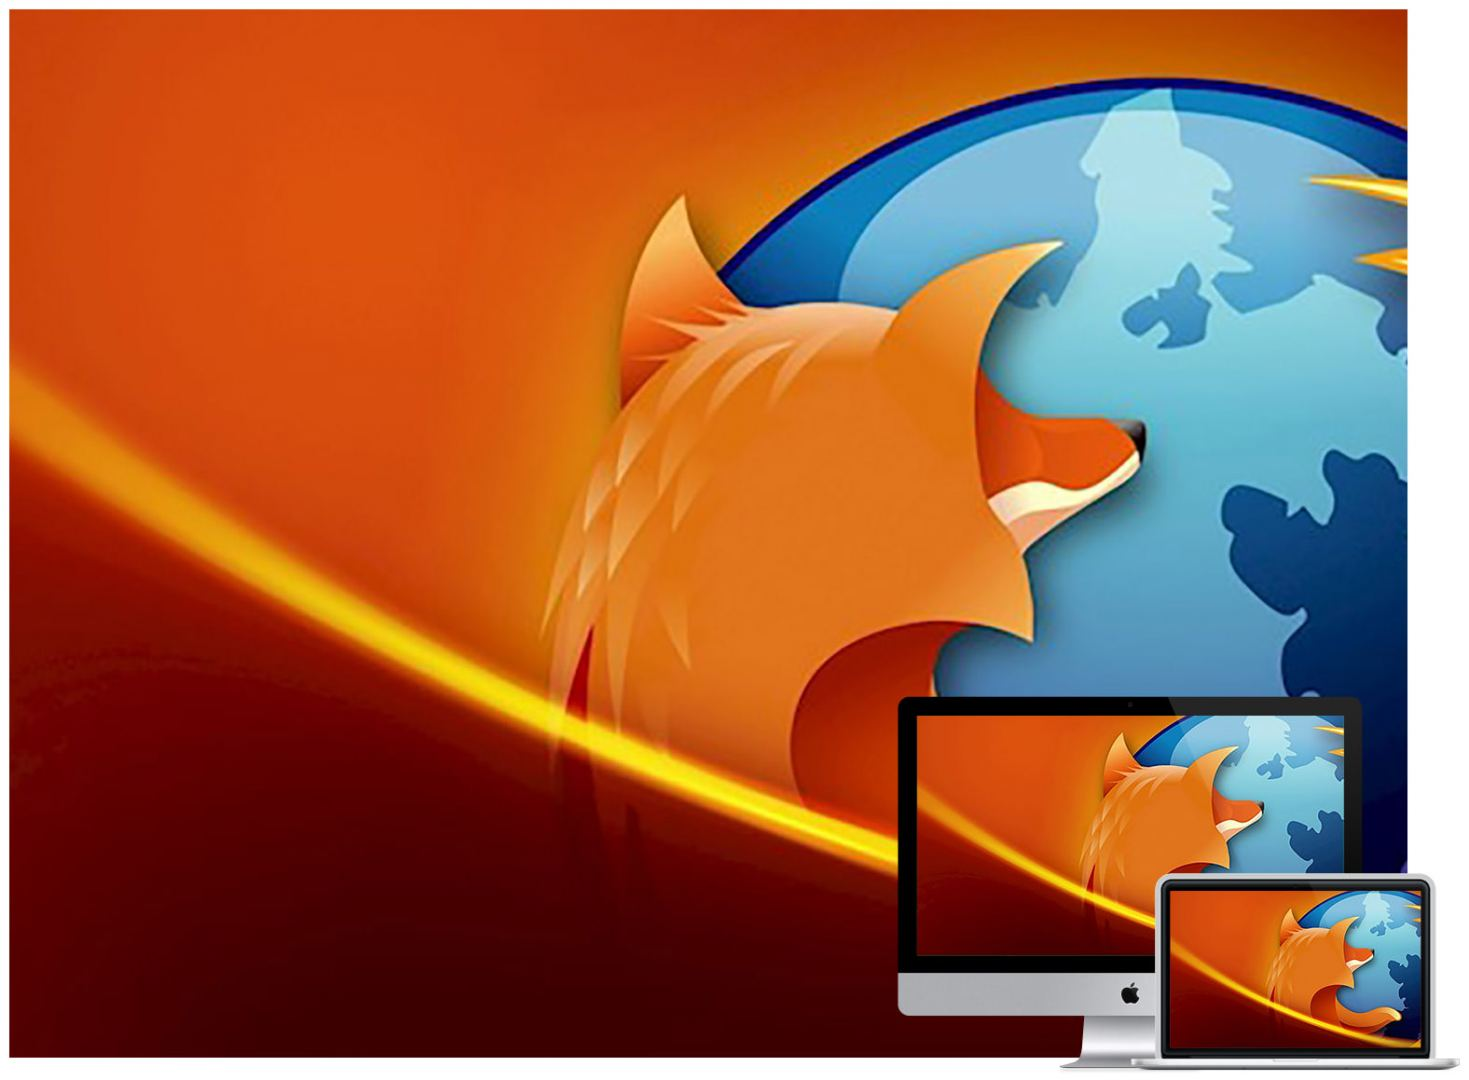 software-orange-firefox-wallpaper